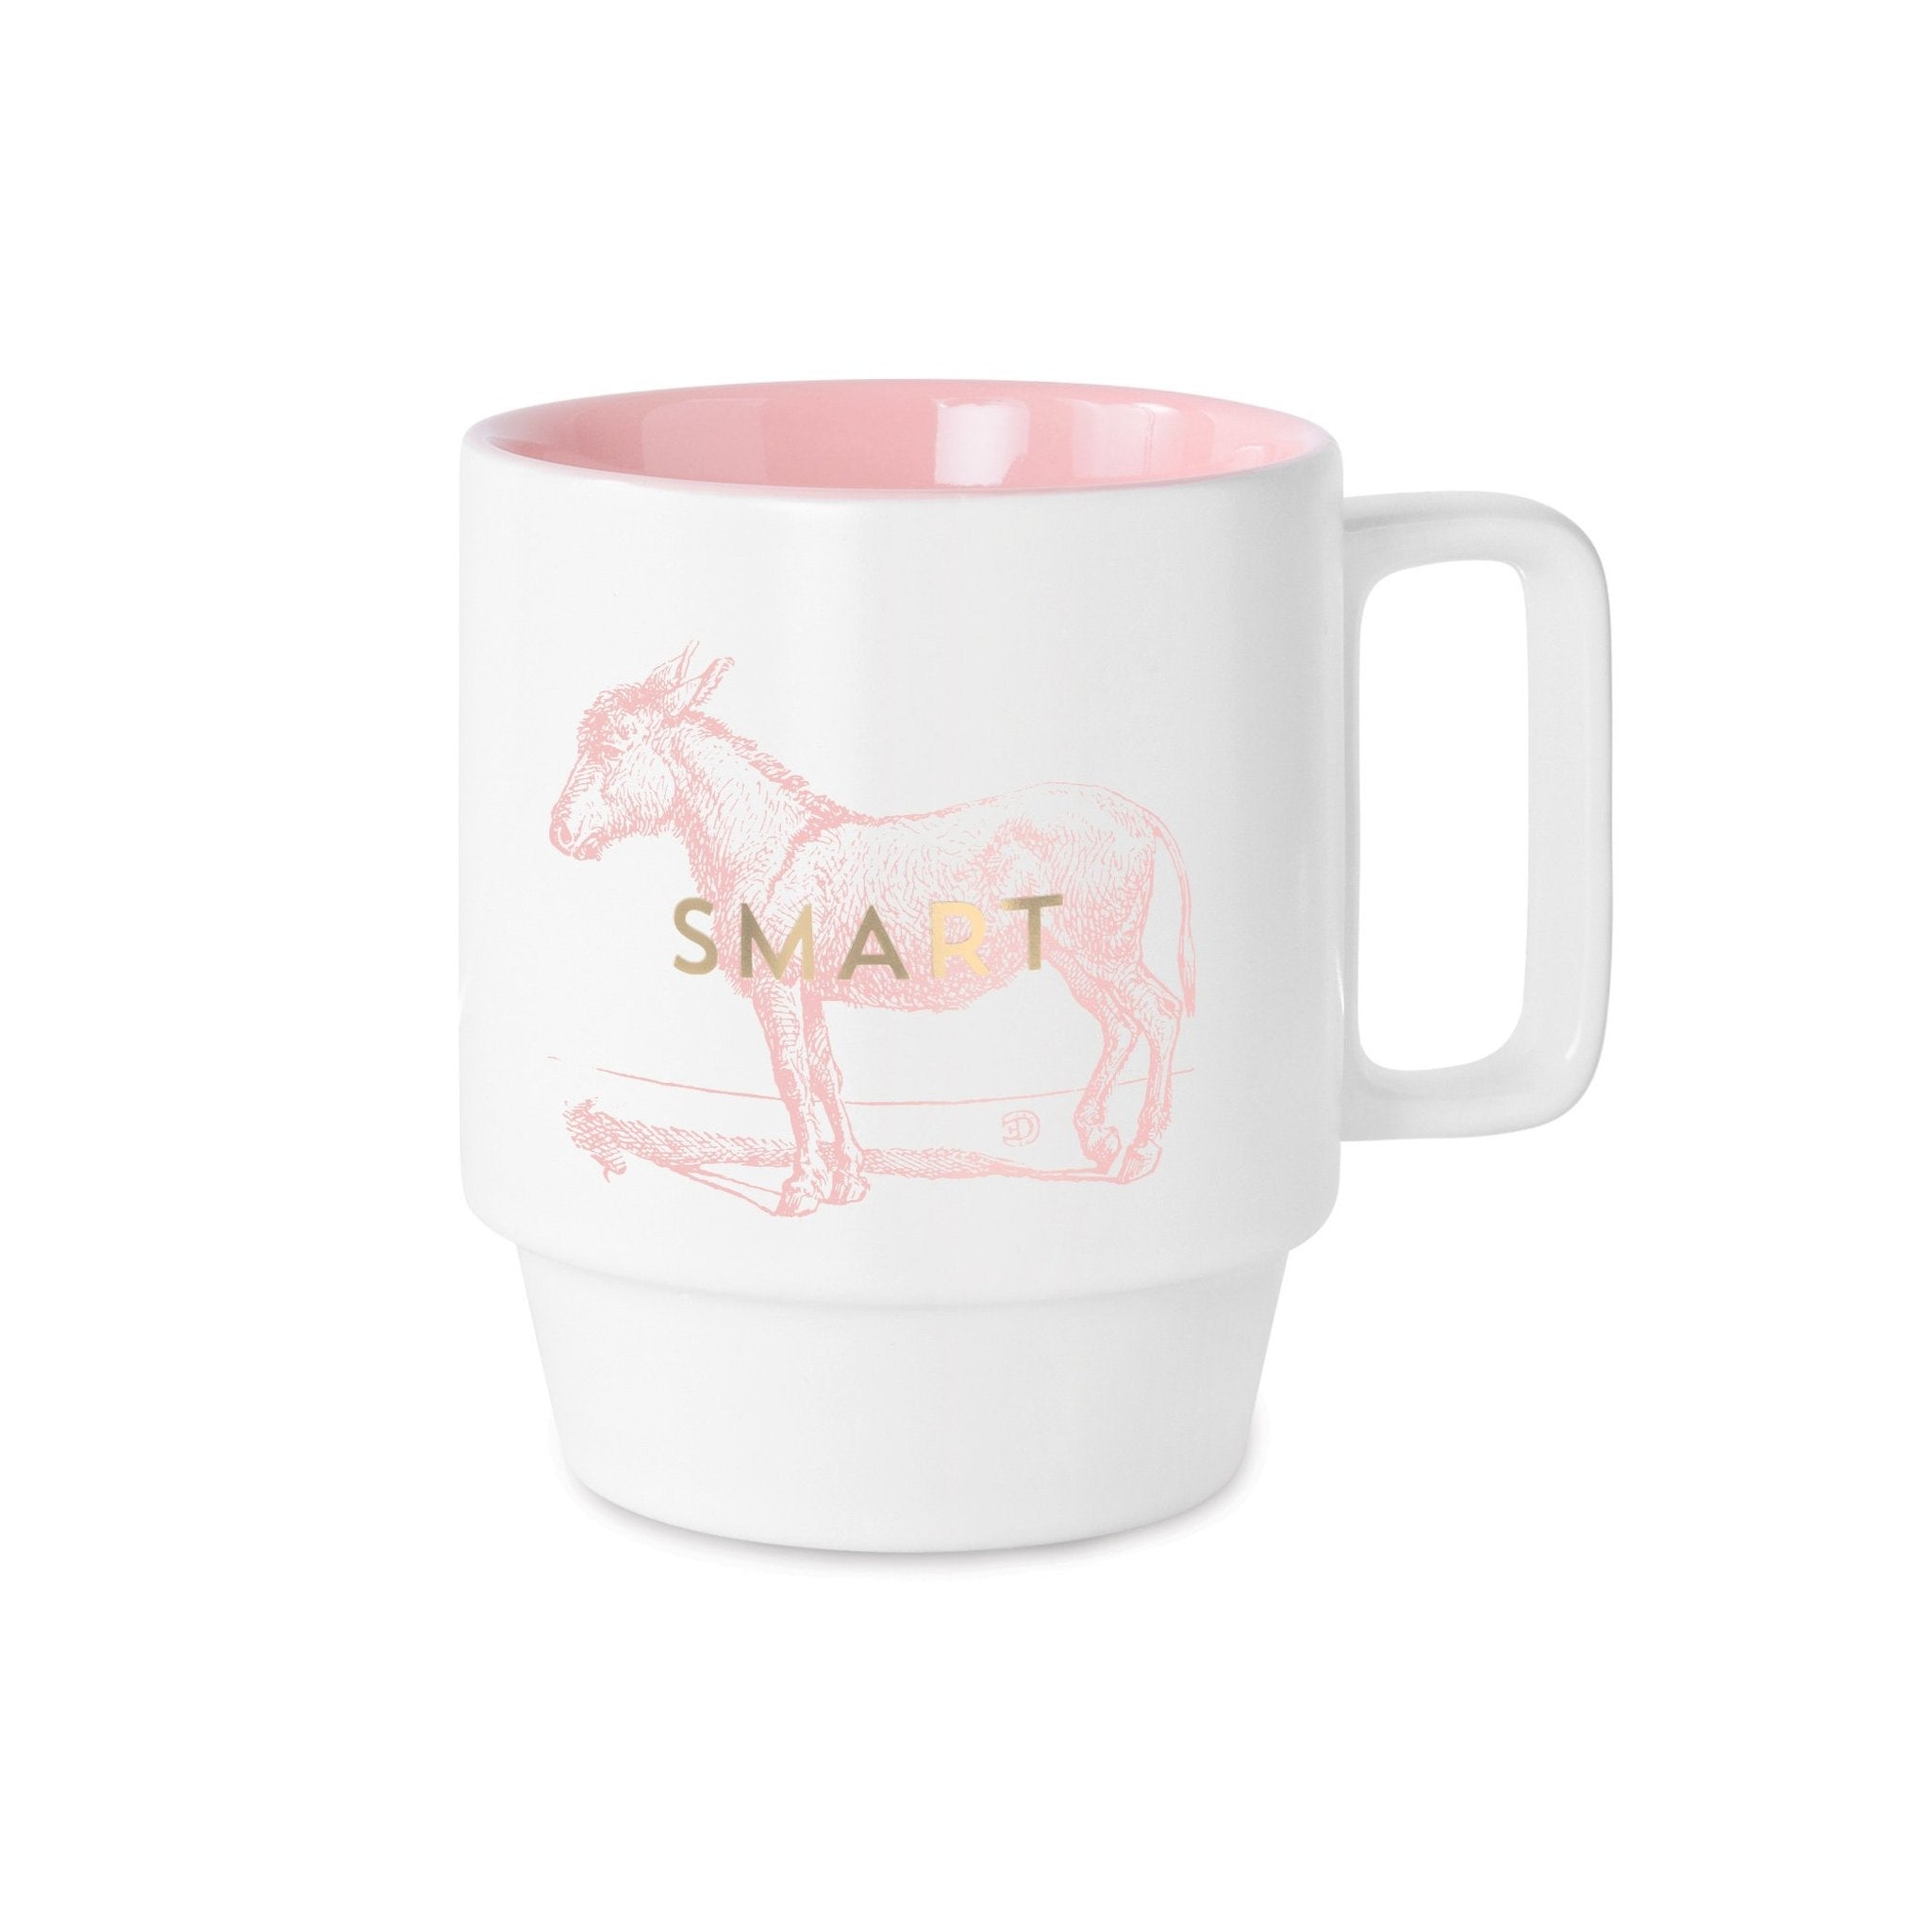 Vintage Sass Mug Collection